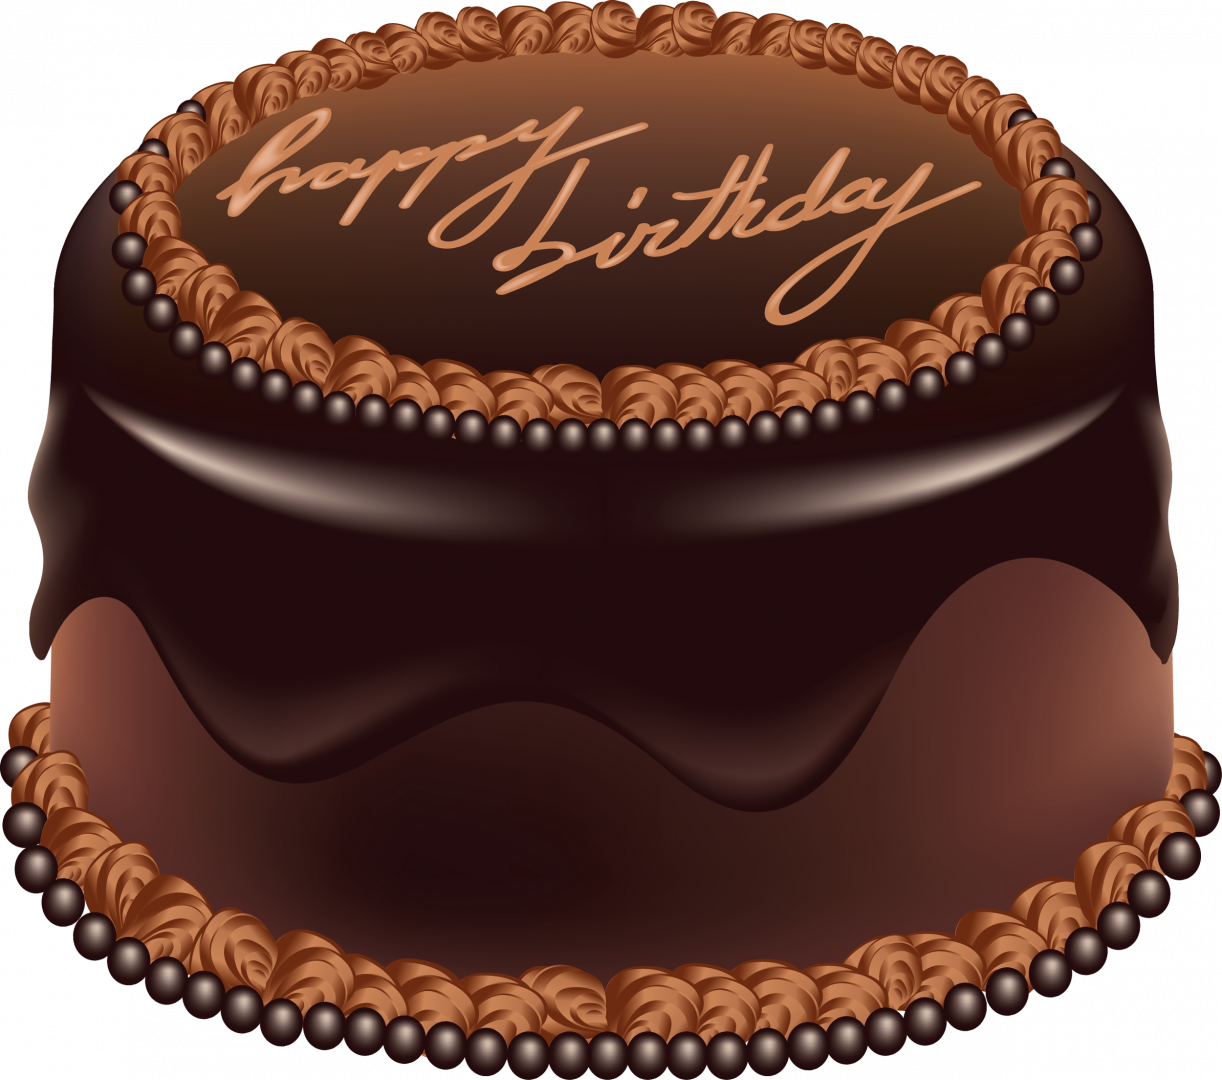 http://pluspng.com/img-png/chocolate-cake-png-hd-beautiful-gallery-free-clipart-picture-cakes-png-chocolate-cake-happy-1222.png Chocolate